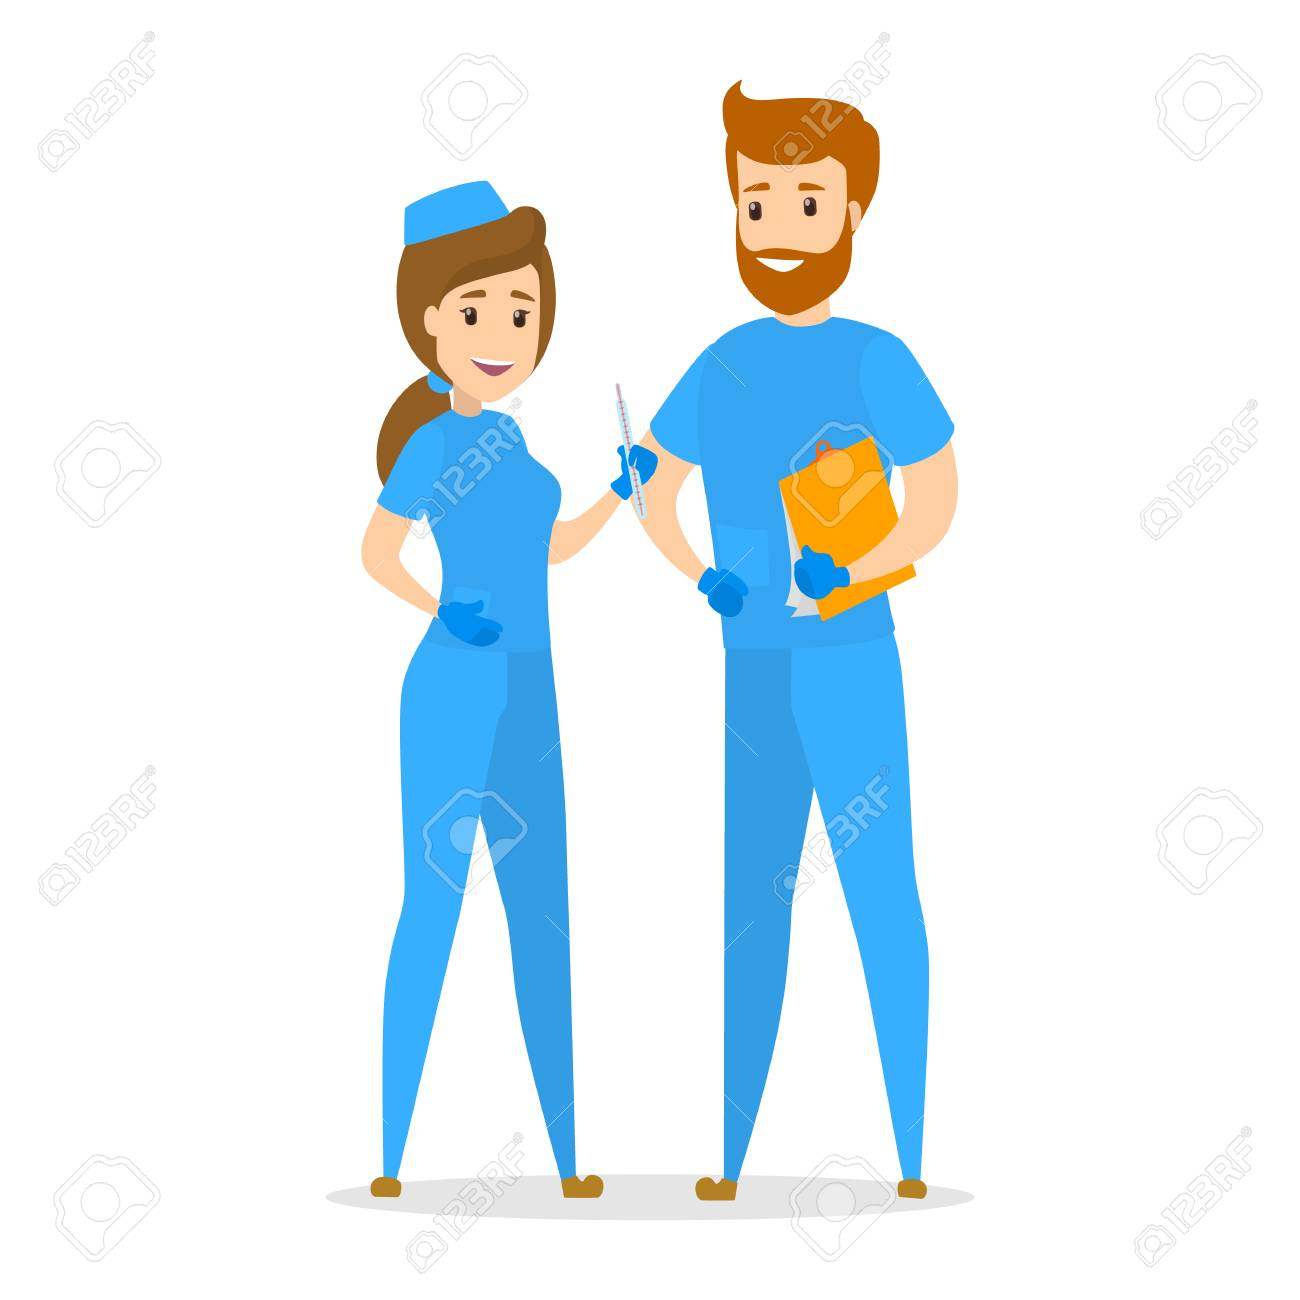 Nurse couple standing in blue uniform. Smiling medicine workers. Isolated flat vector illustration - 105843699